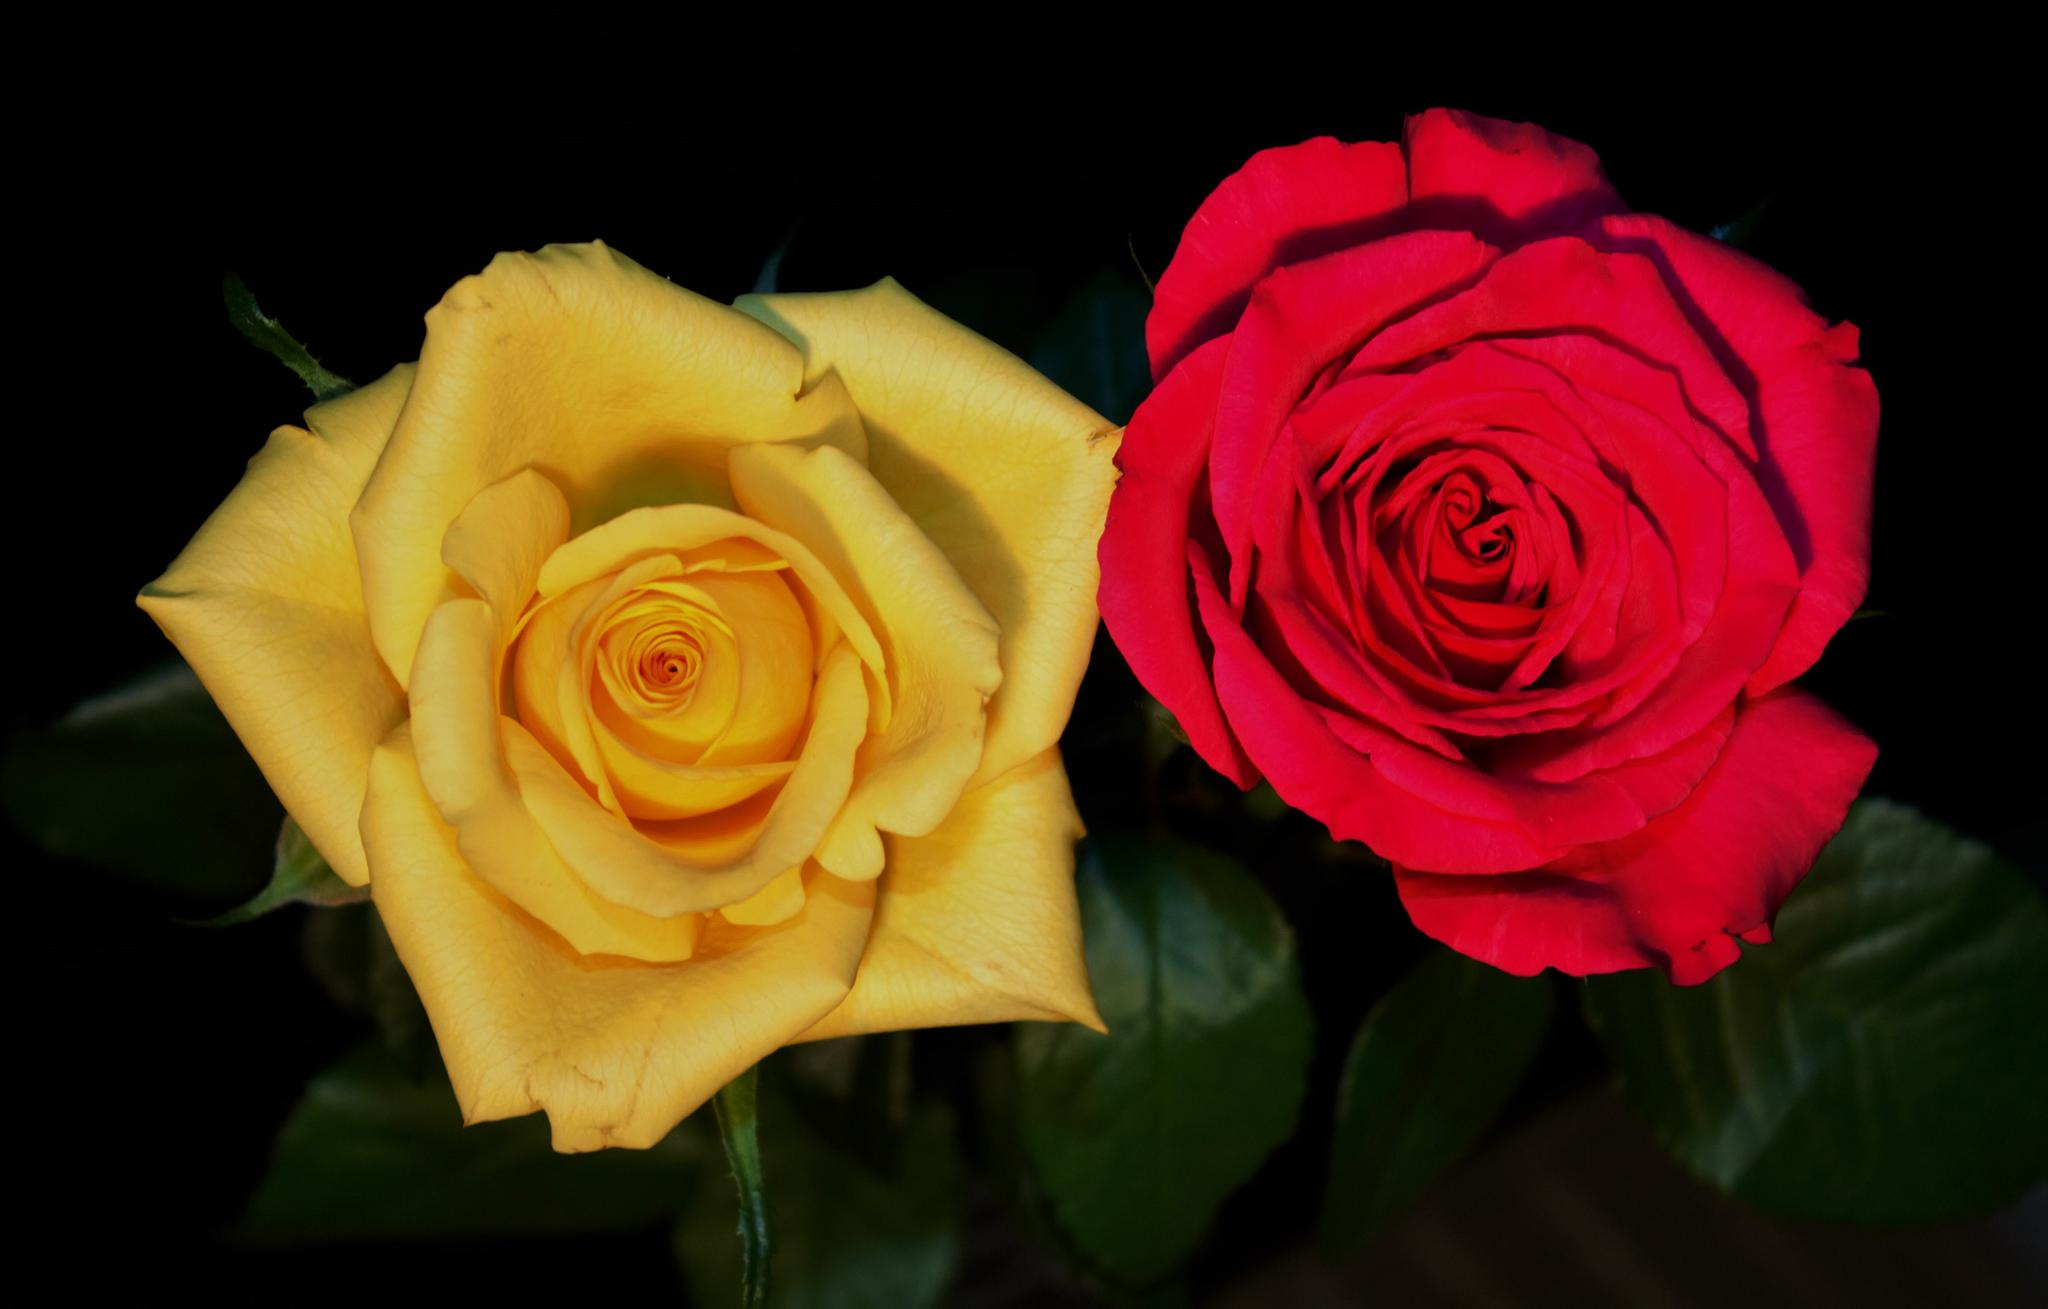 Yellow Rose red Rose. by sidoneill1